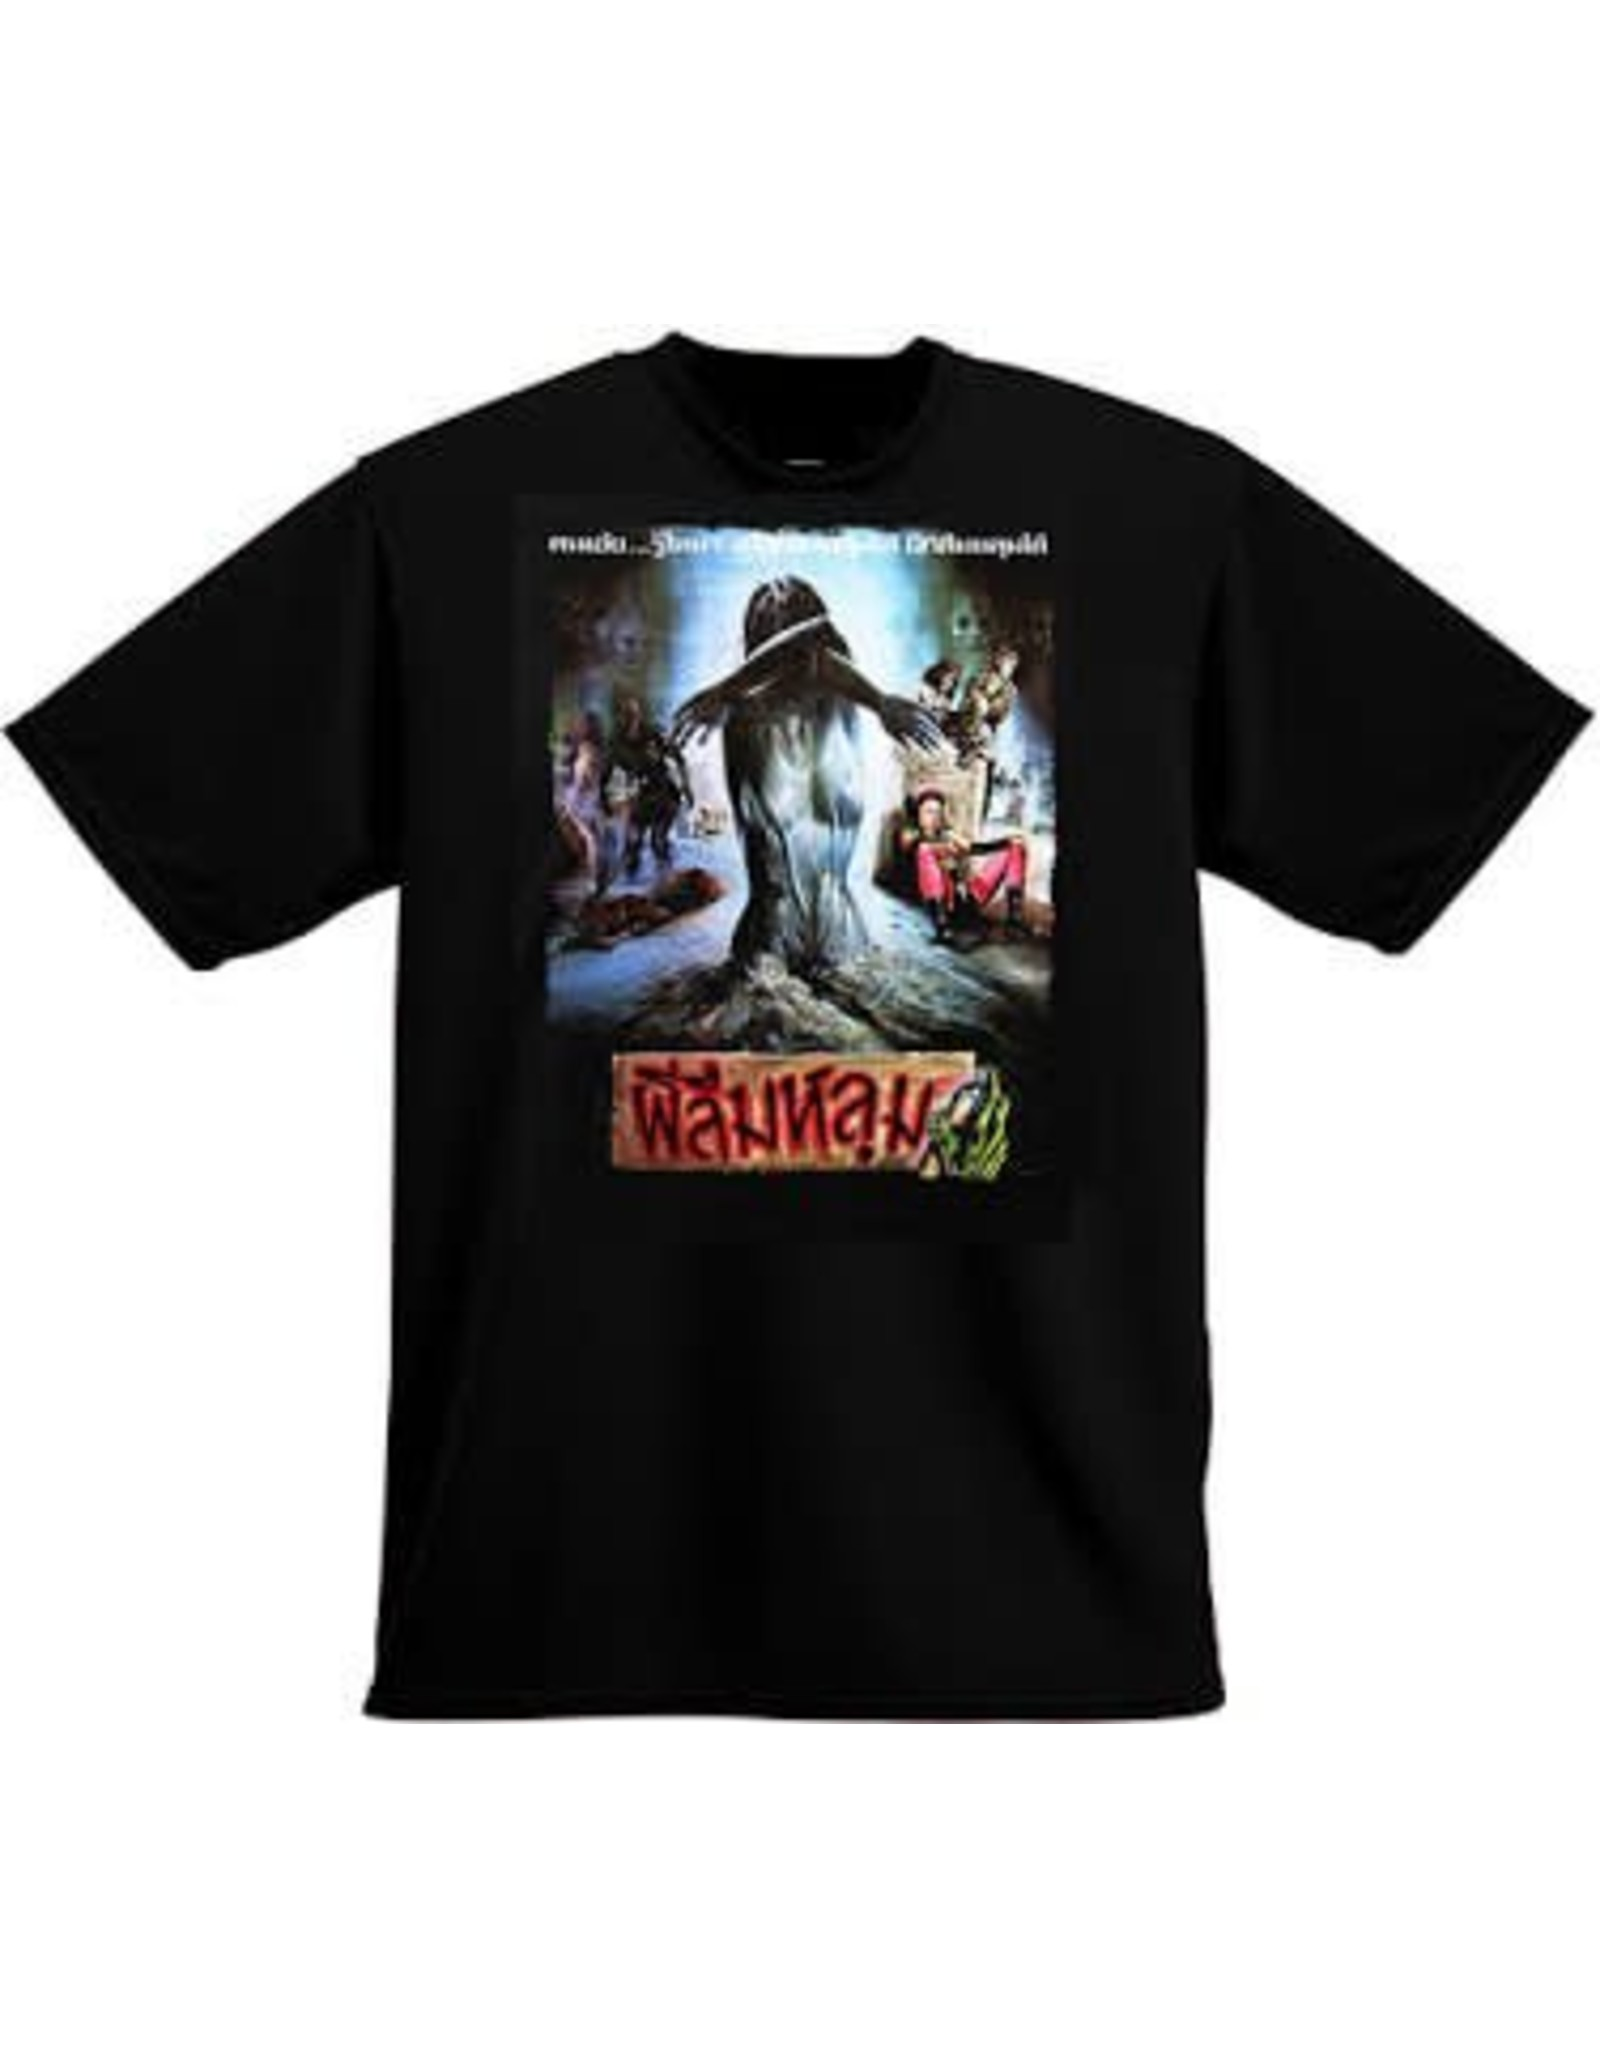 Return of the Living Dead Foreign Shirt